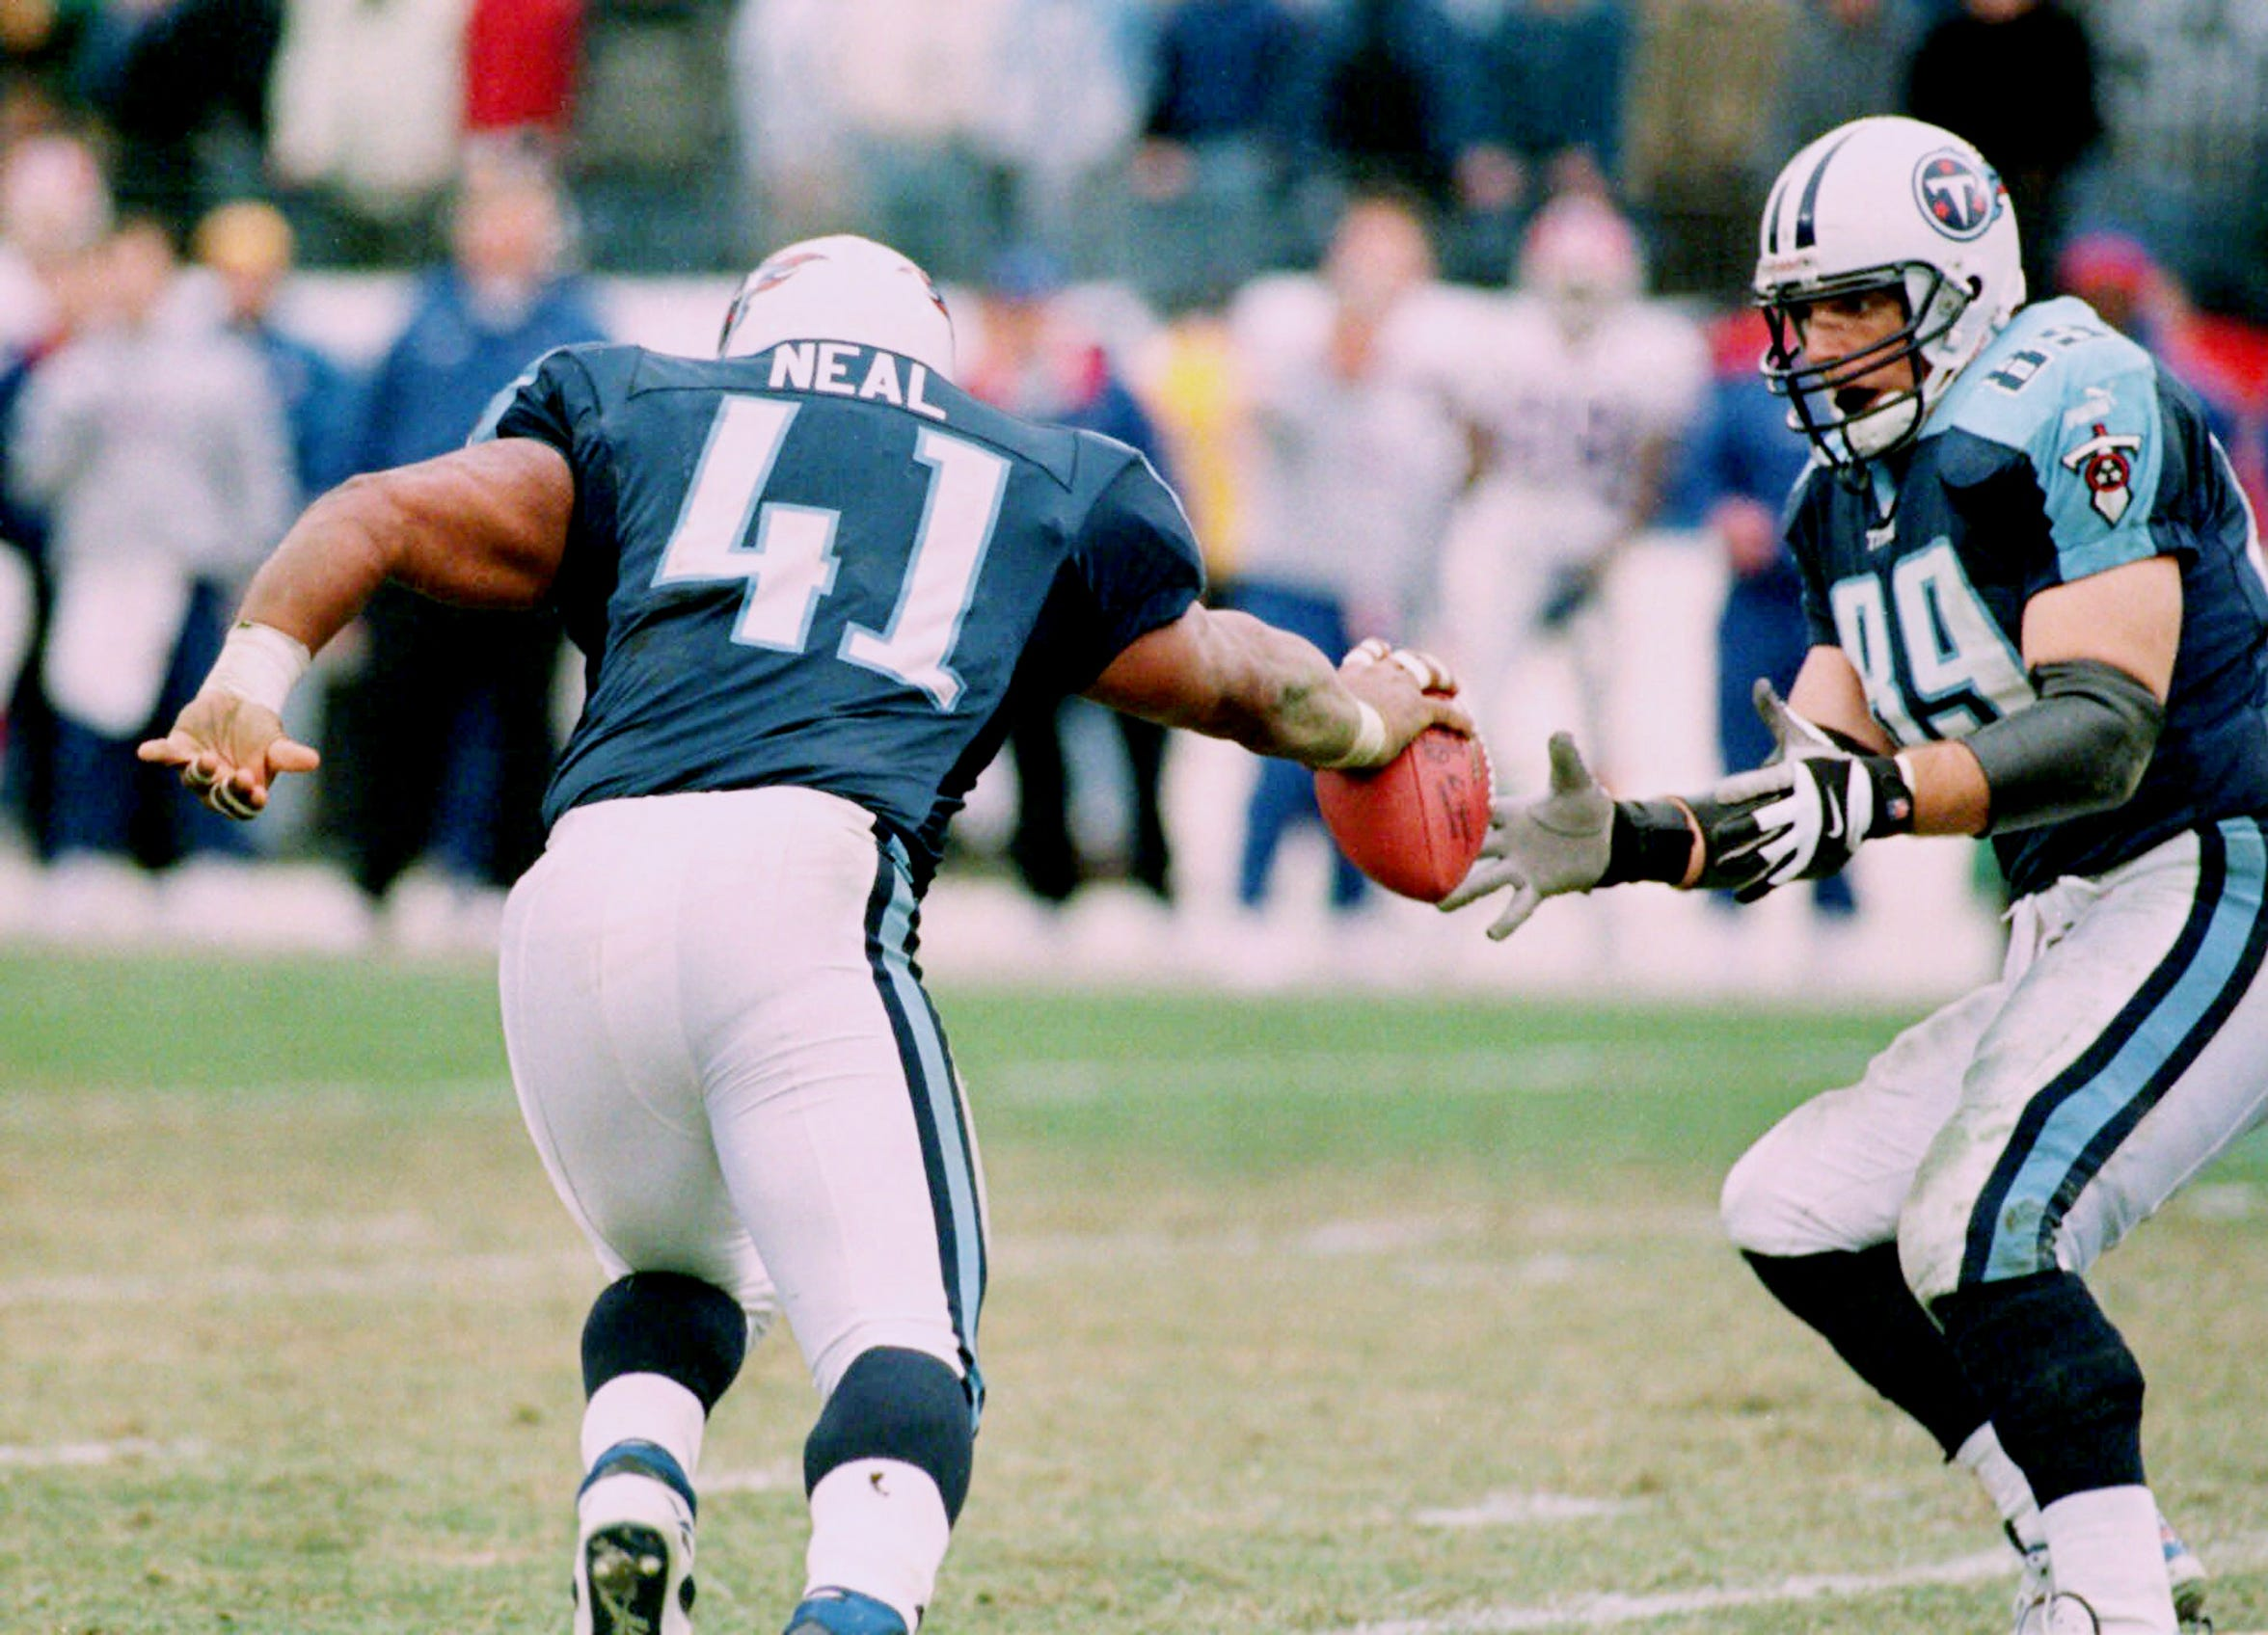 Tennessee Titans fullback Lorenzo Neal (41) hands the ball off to tight end Frank Wycheck (89) after Neal received a kickoff from the Buffalo Bills with 16 seconds left of the game and the Bills leading 16-15 in the AFC wild card game at Adelphia Coliseum Jan. 8, 2000.